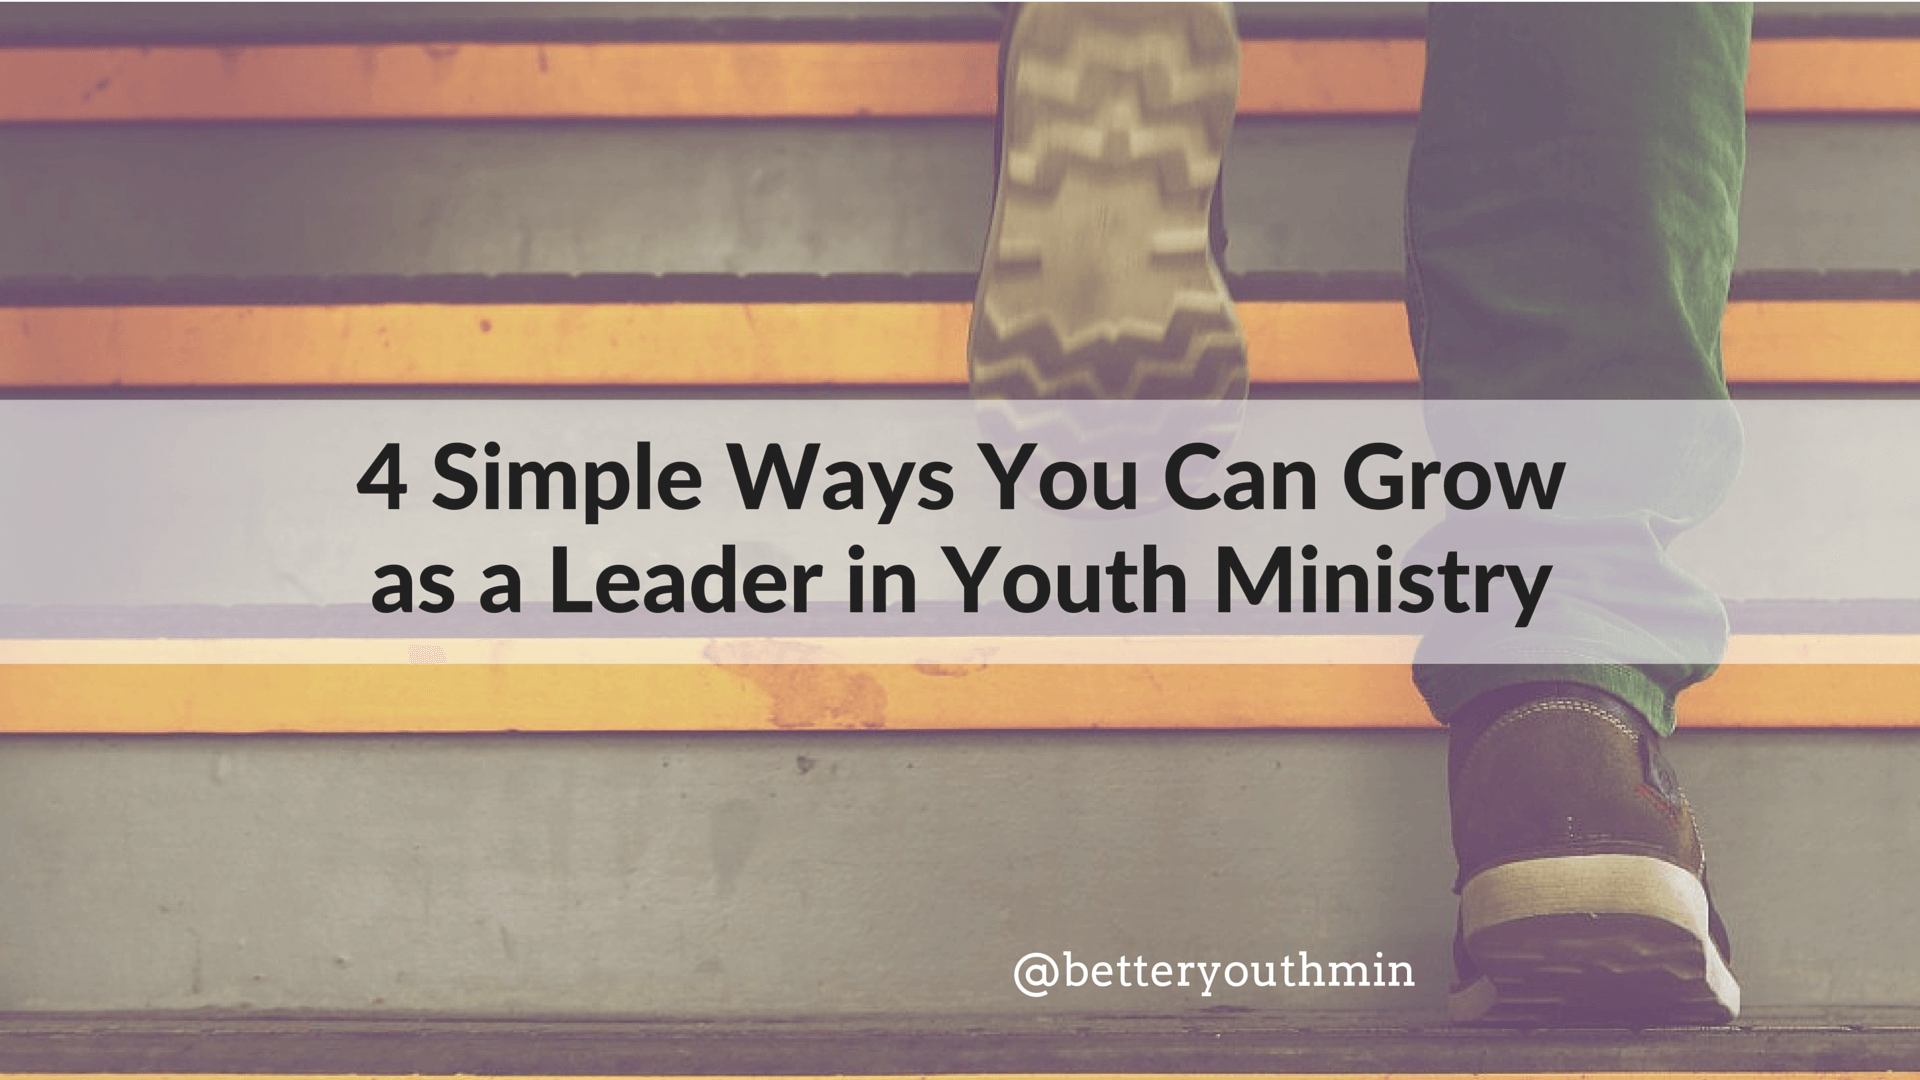 4 Simple Ways You Can GROW as a Leader in Youth Ministry